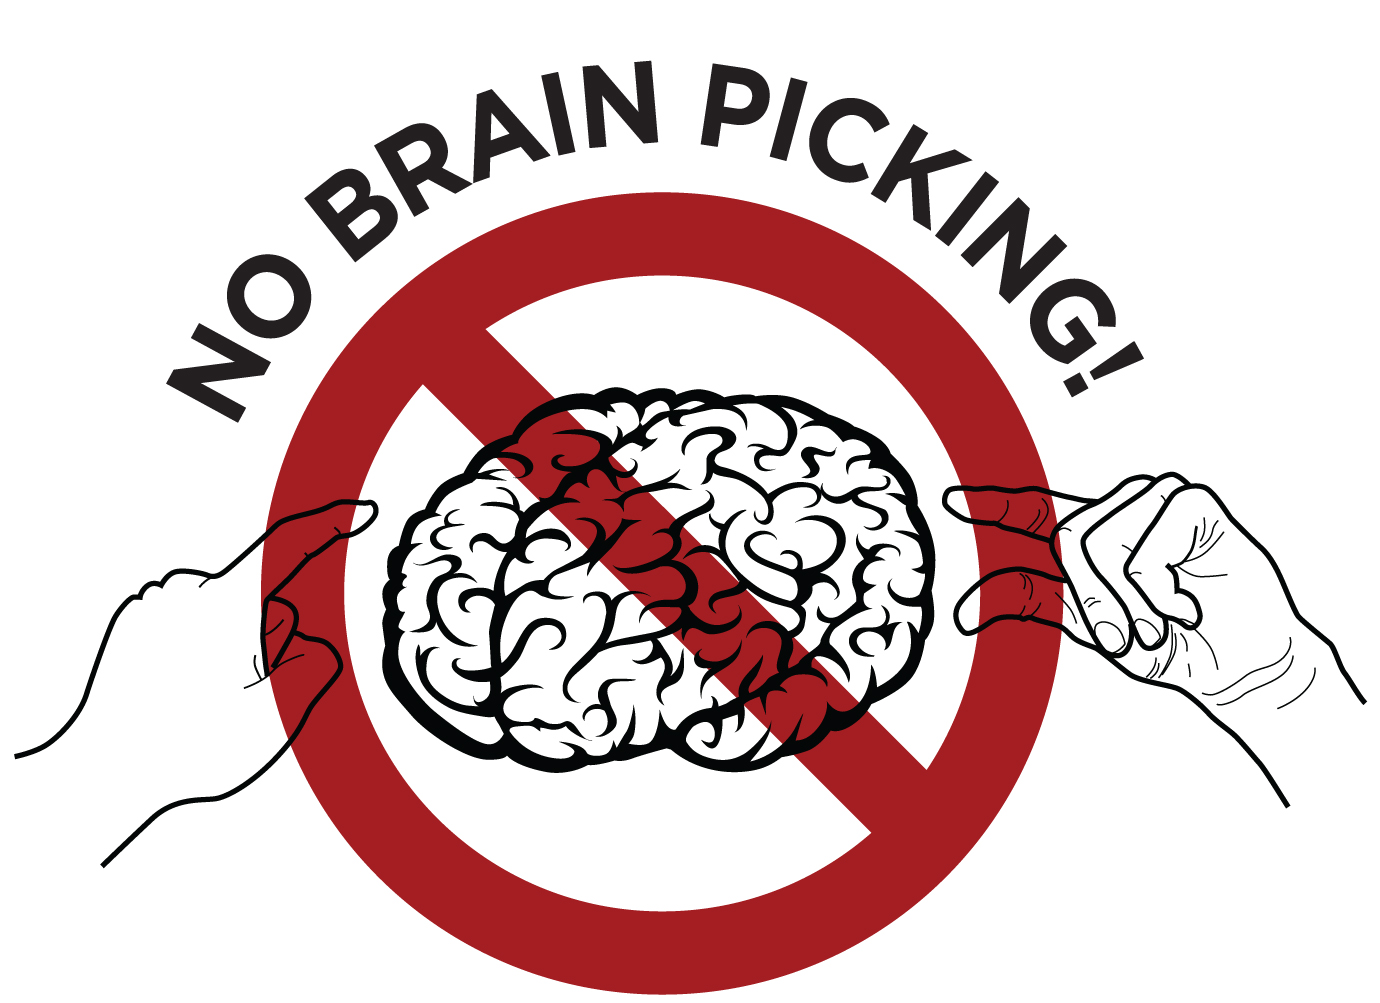 Are you on the National No Brain Picking list?